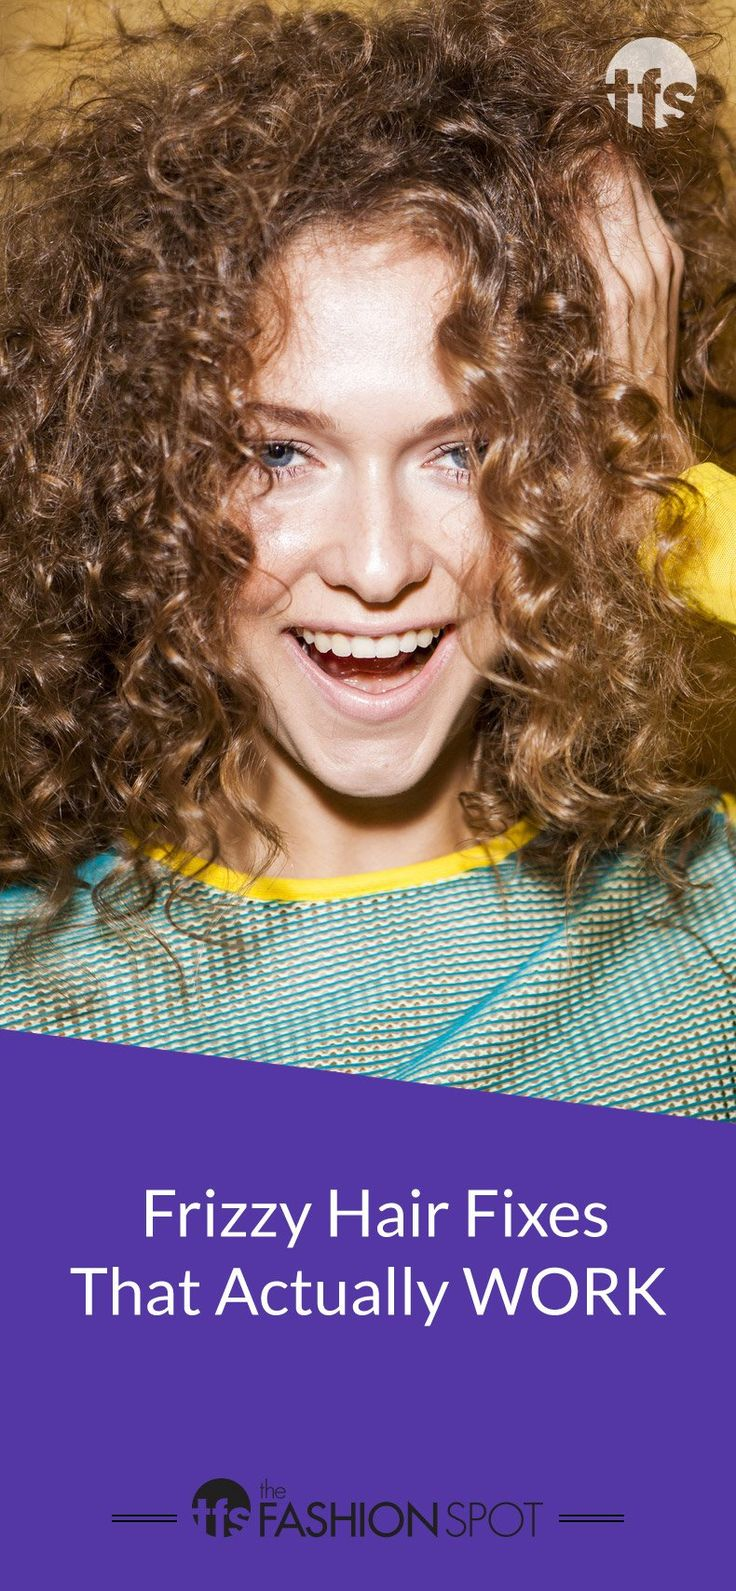 Best HairStyles For 2017/ 2018 - Frizzy Hair Fixes: Anti-Humidity ...